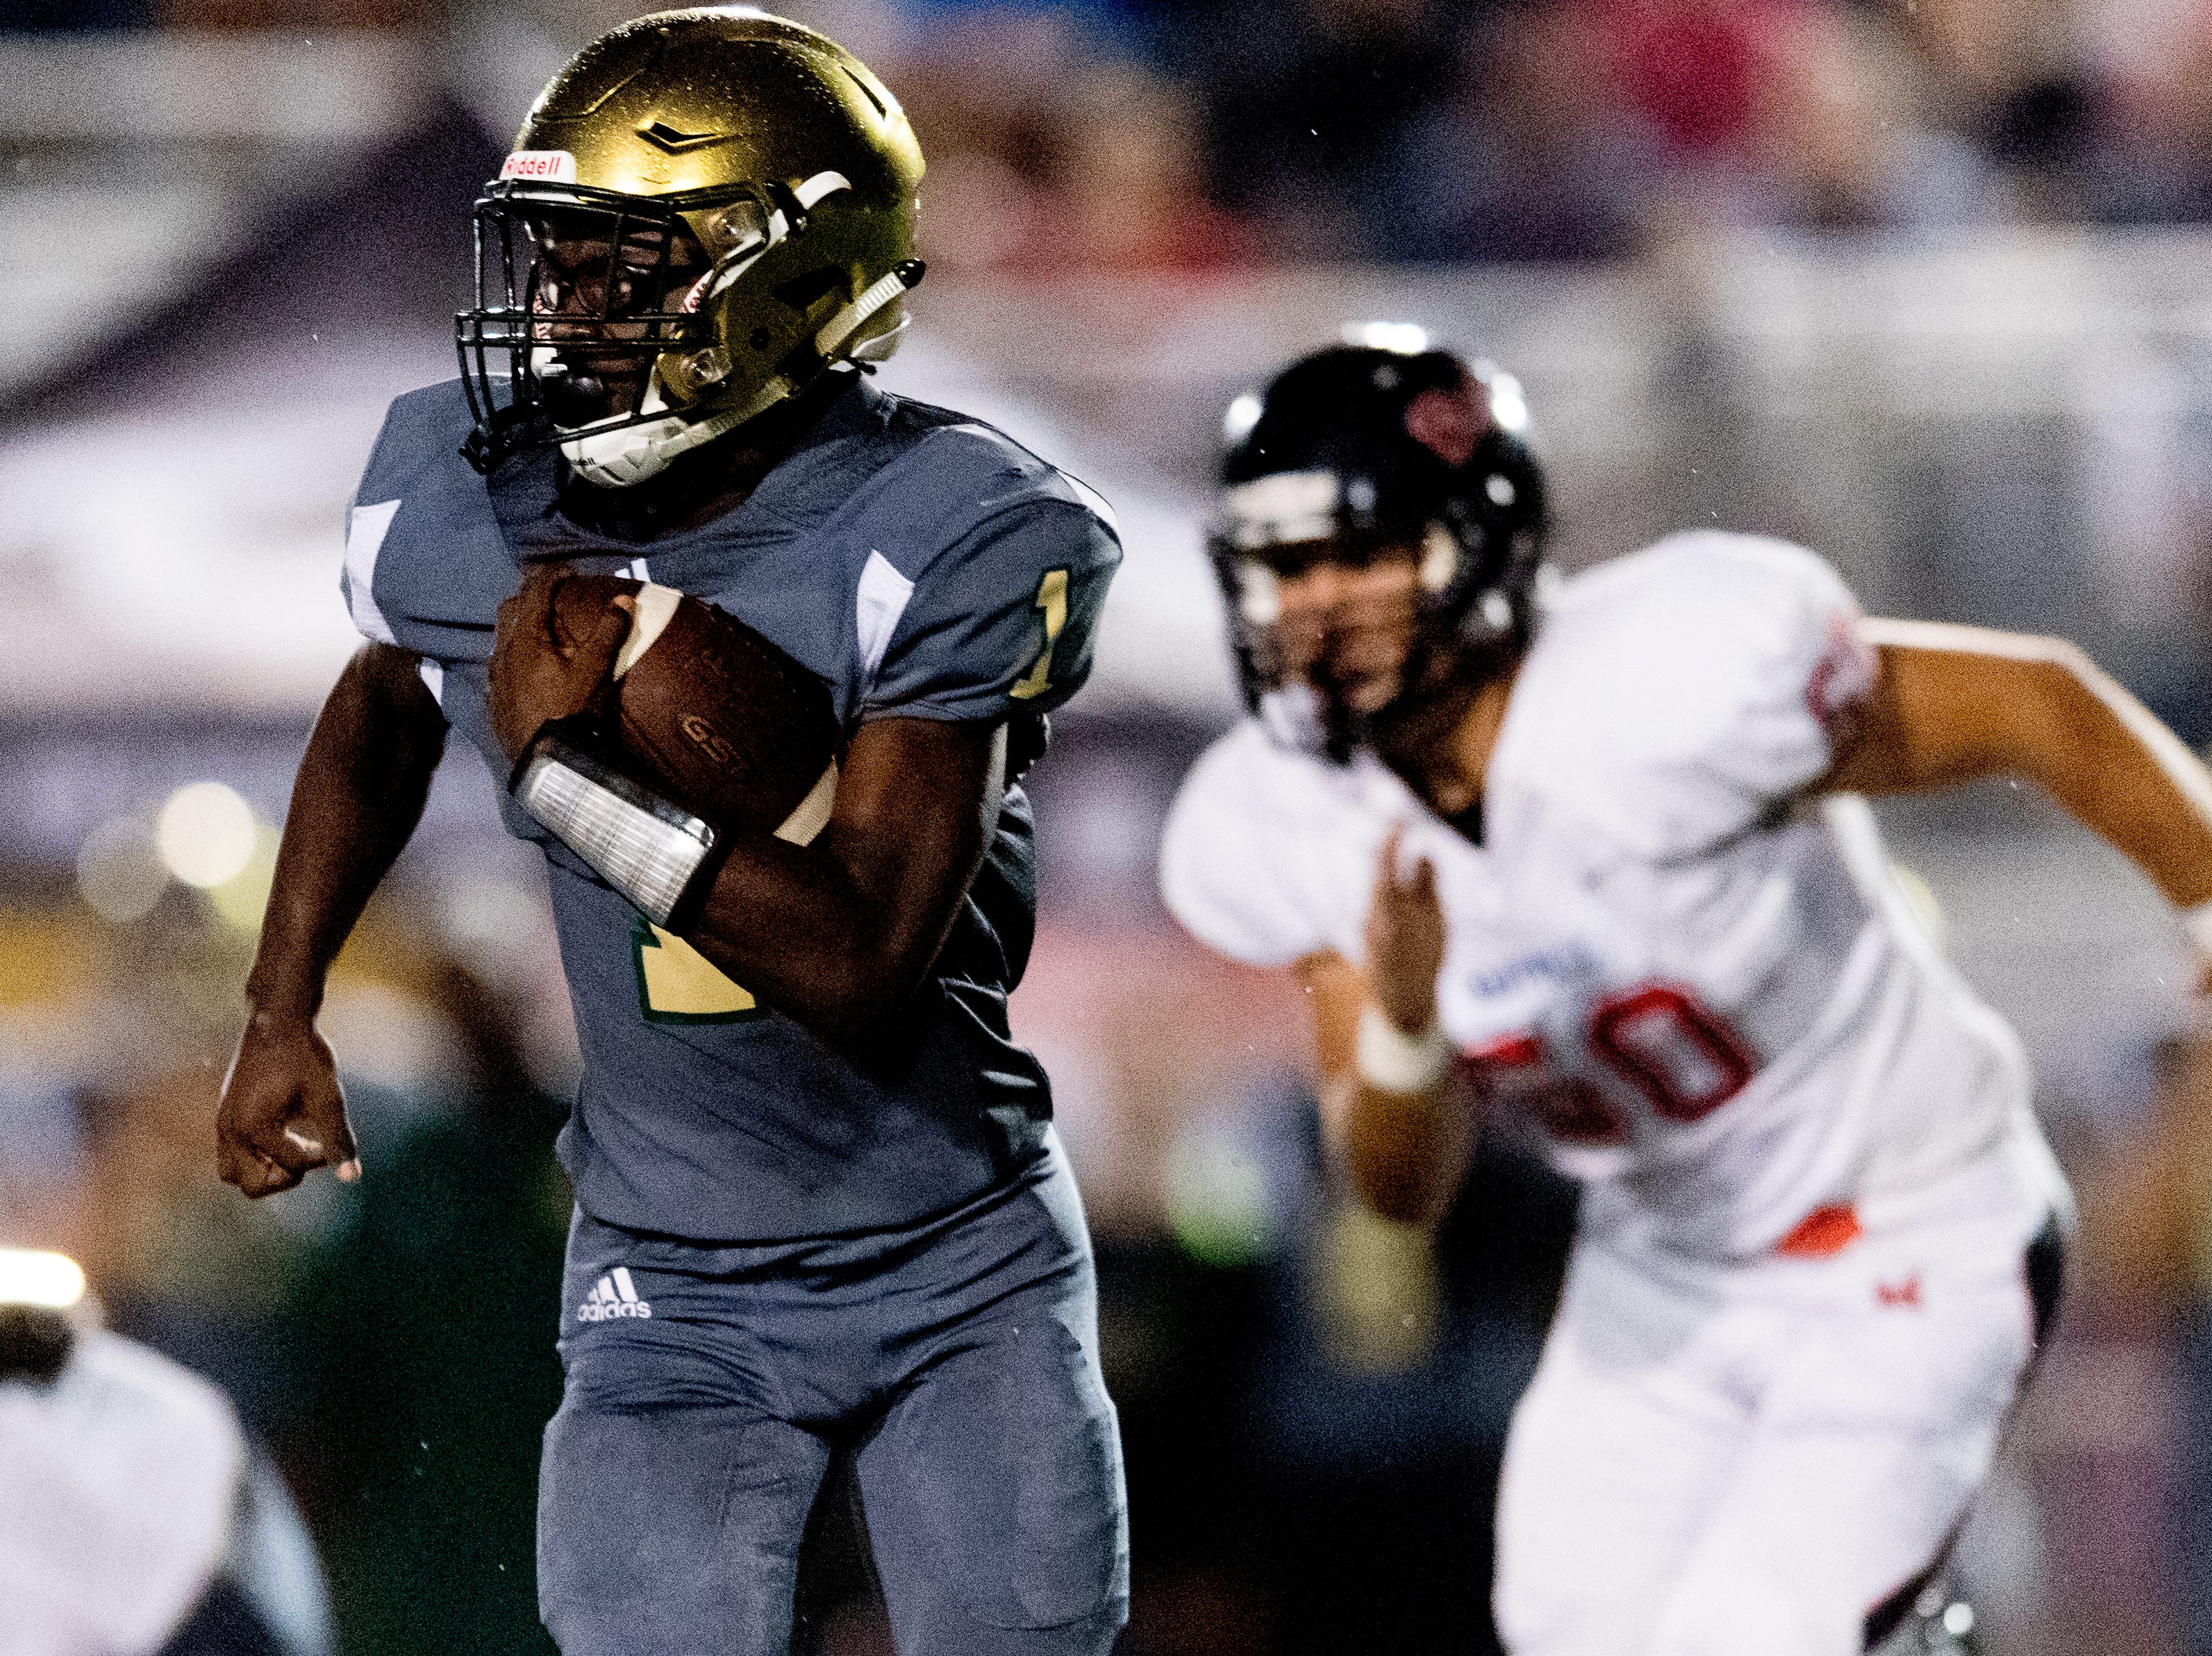 Catholic's Keondre' Jarmon (1) runs the ball as Maryville's Colton Peek (50) pursues during a football game between Maryville and Catholic at Catholic High School in Knoxville, Tennessee on Friday, August 17, 2018.